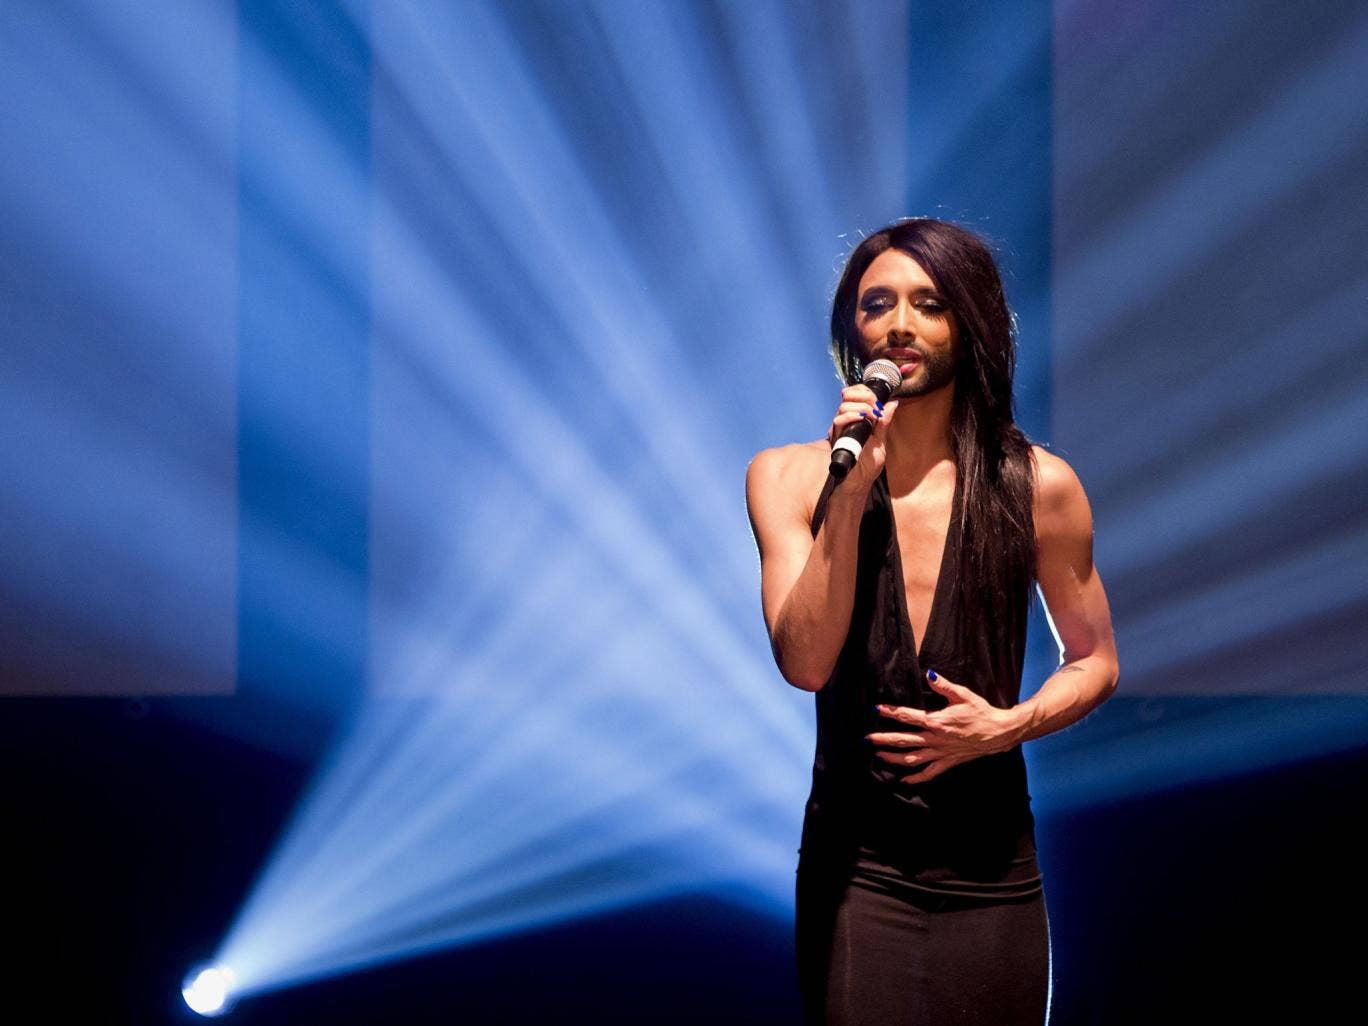 Conchita Wurst of Austria will perform 'Rise Like A Phoenix' at the Eurovision Song Contest